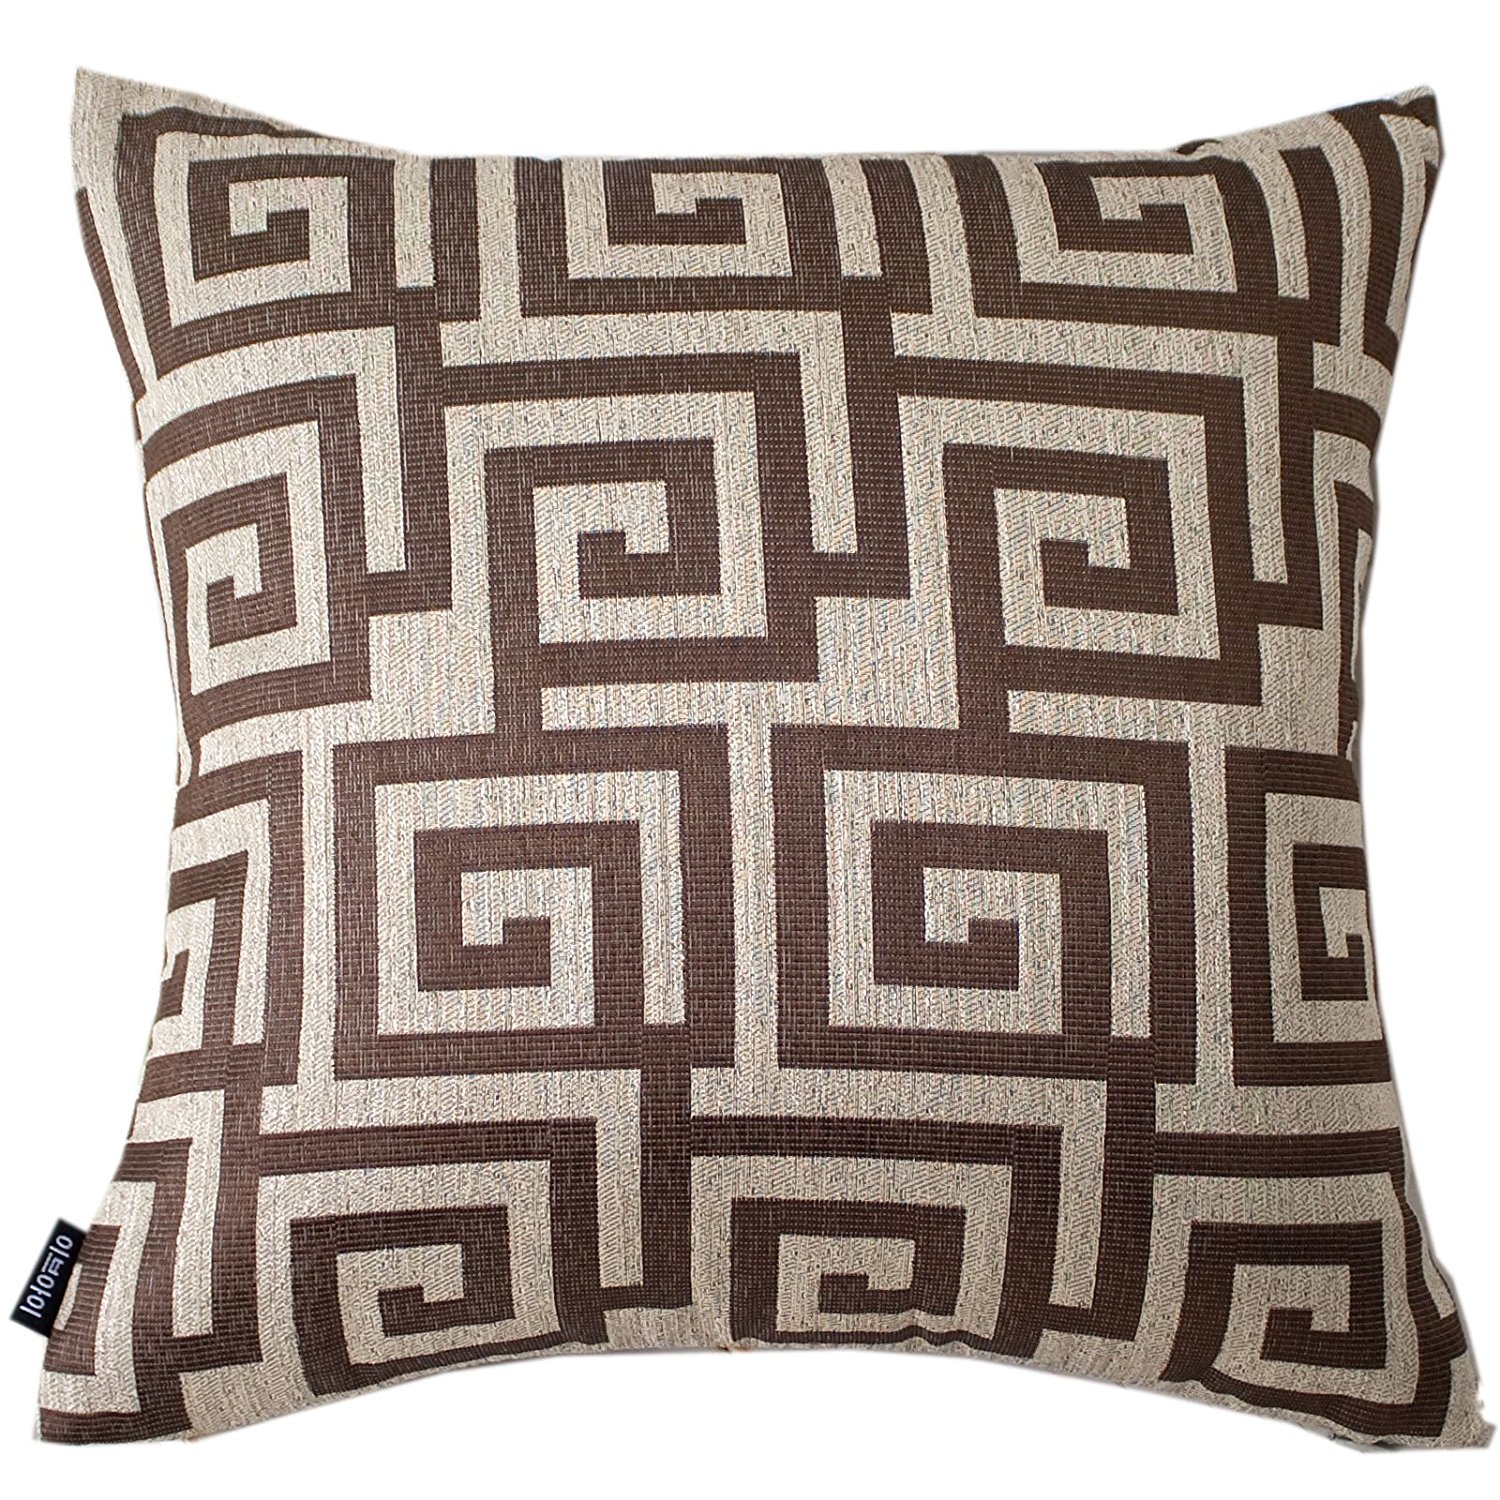 """Evei Vintage Luxury Brown Color Jacquard Home Decorative Throw Pillow Case / Cushion Cover Square 16"""" 18"""" 20"""" Choice (18""""x18""""inch(45x45cm))"""